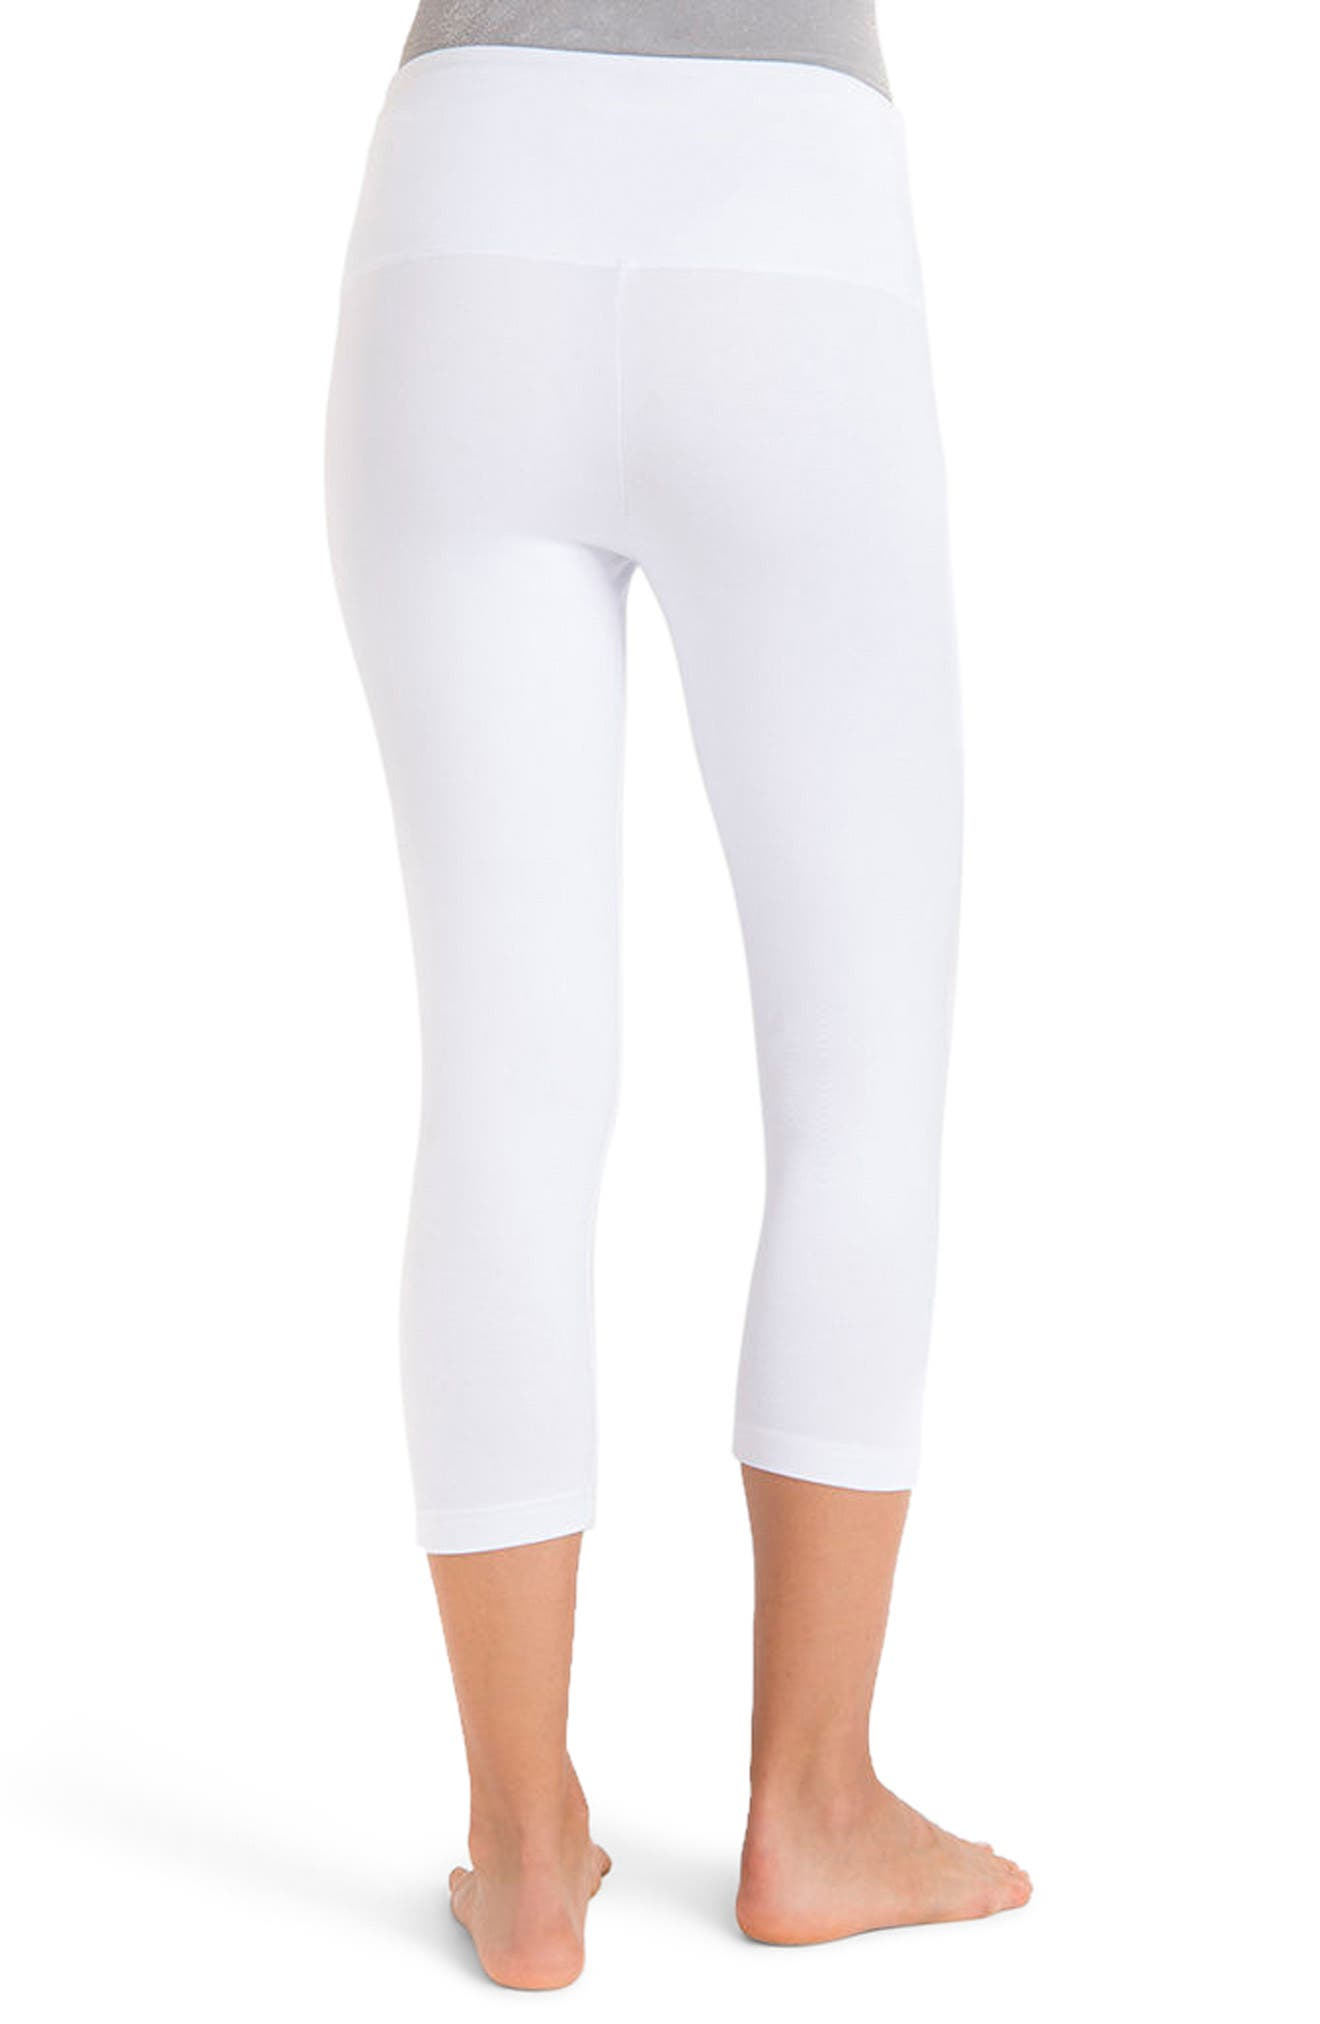 Control Top High Waist Capris,                             Alternate thumbnail 3, color,                             WHITE